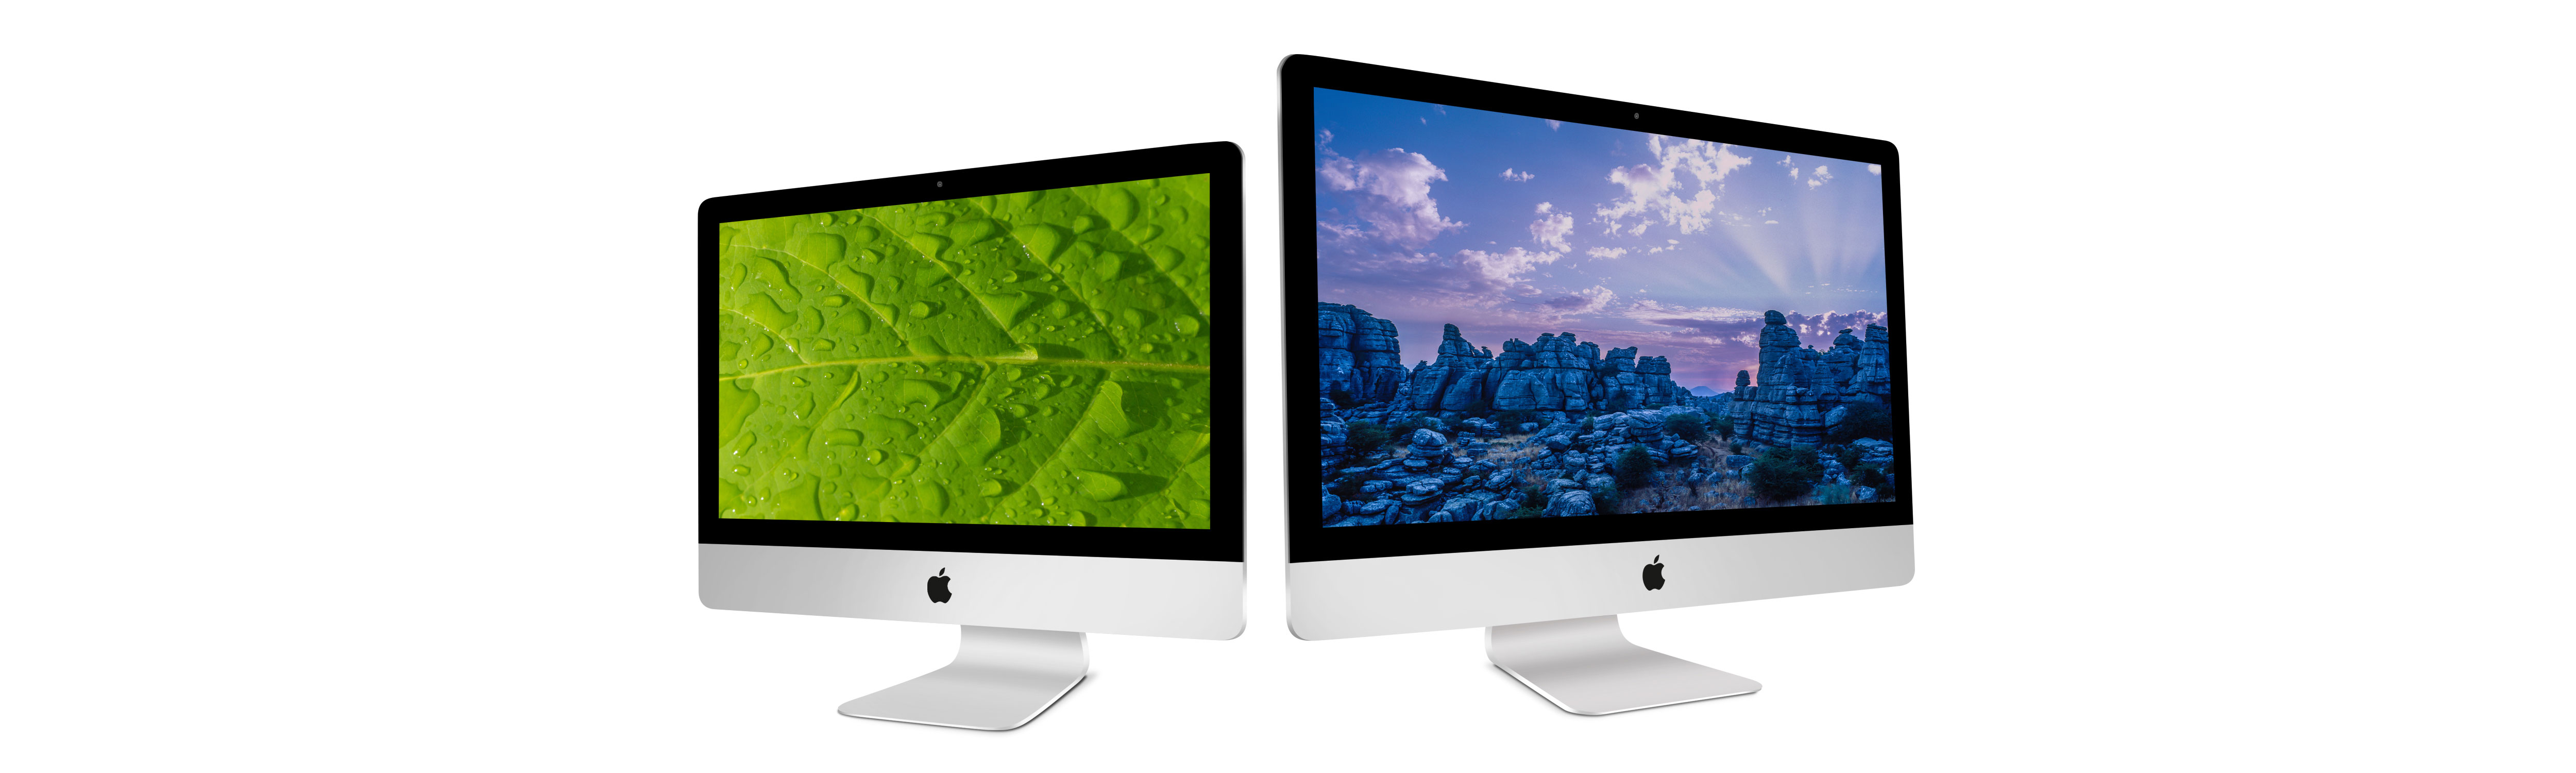 Apple iMac 5K - 21 Zoll und 27 Zoll - SSD Upgrade durch Apple Support Hamburg - System Support